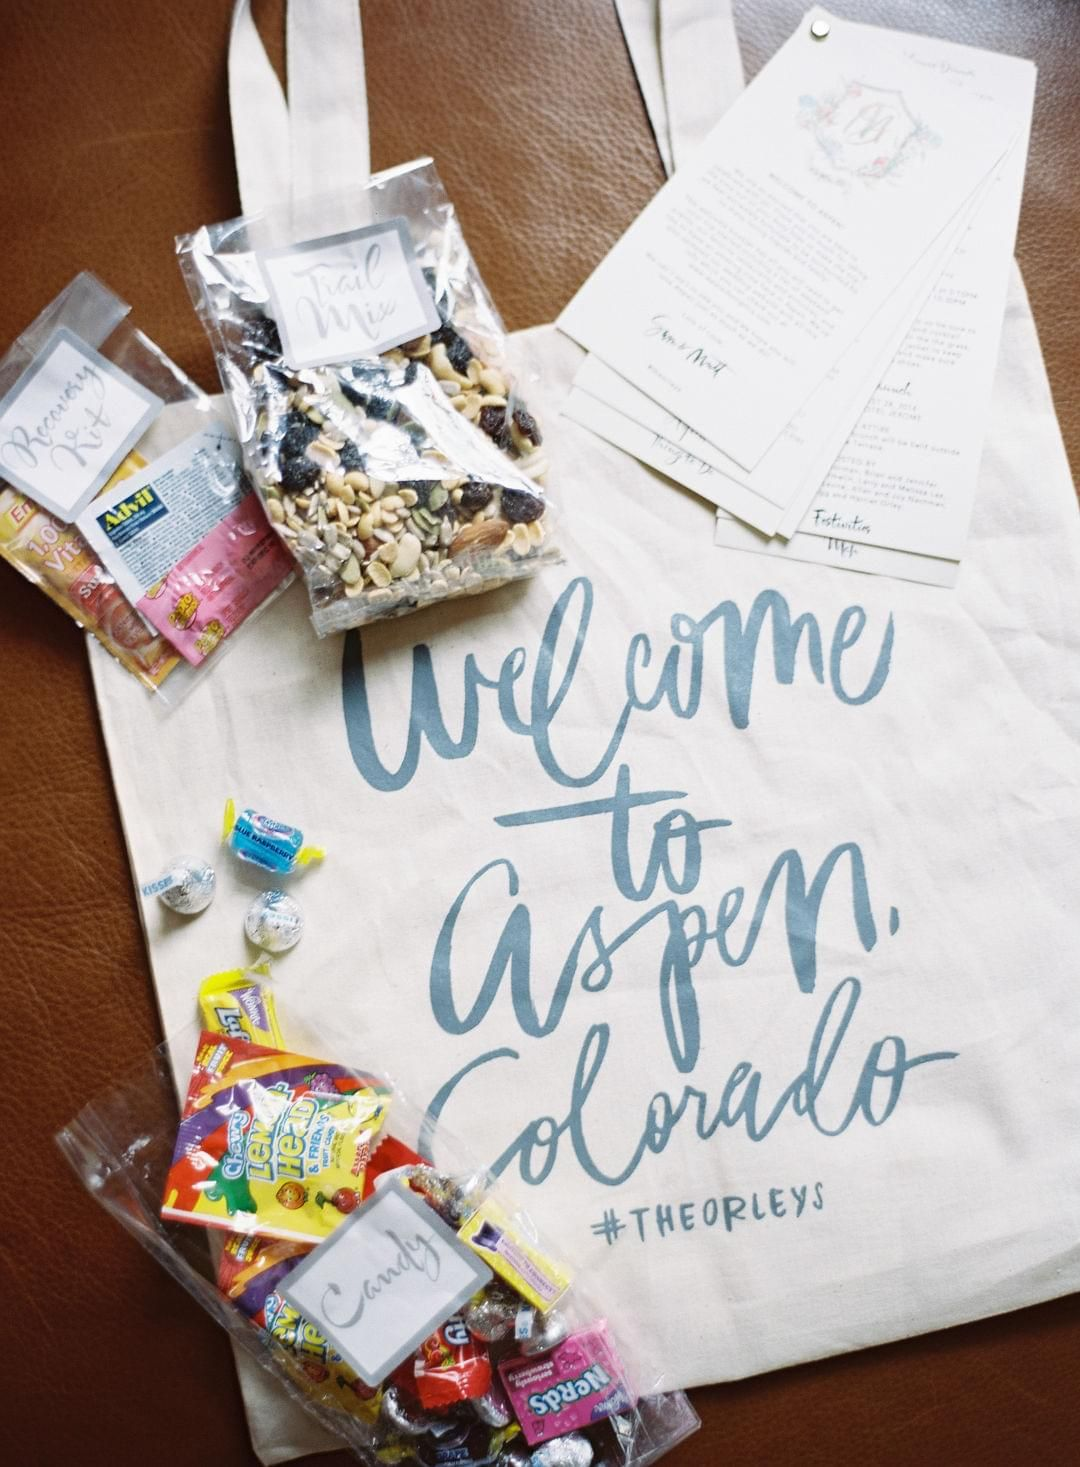 The Smarter Way to Wed | Candy favors, Favors and Weddings